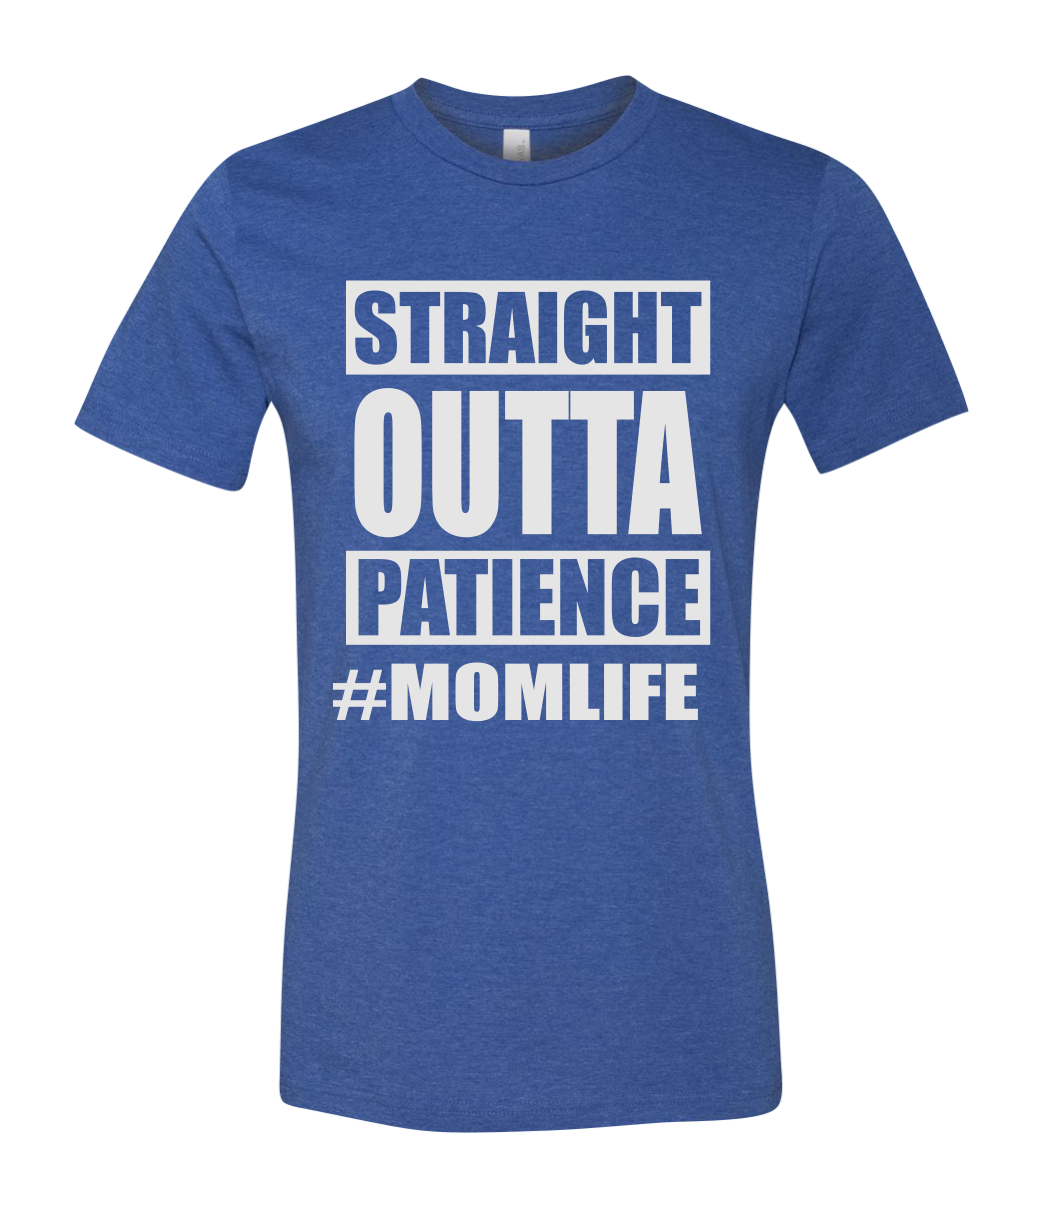 Straight Outta Patience Short Sleeve Graphic T-shirt